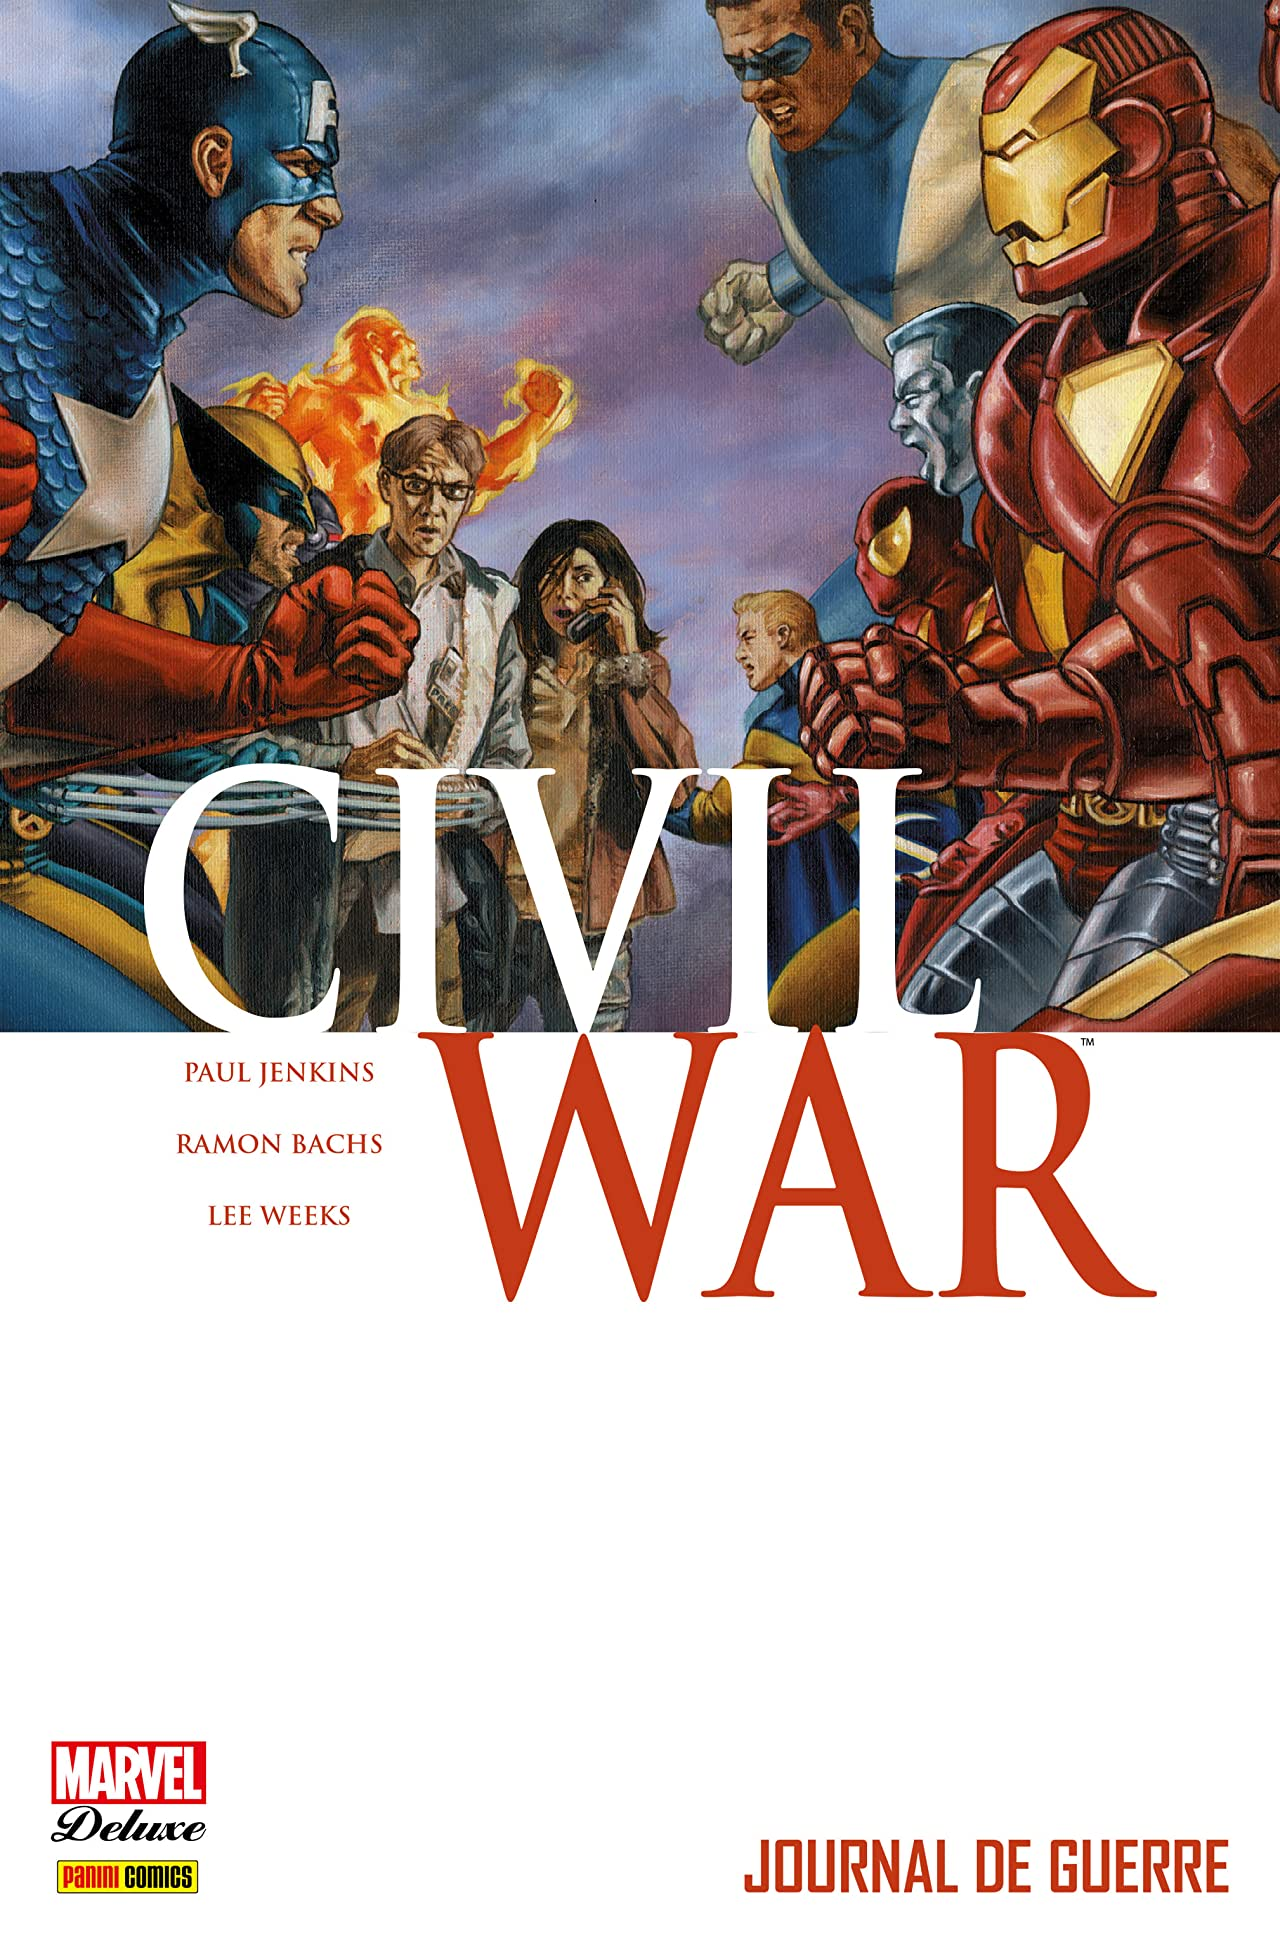 Civil War Vol. 4: Journal De Guerre